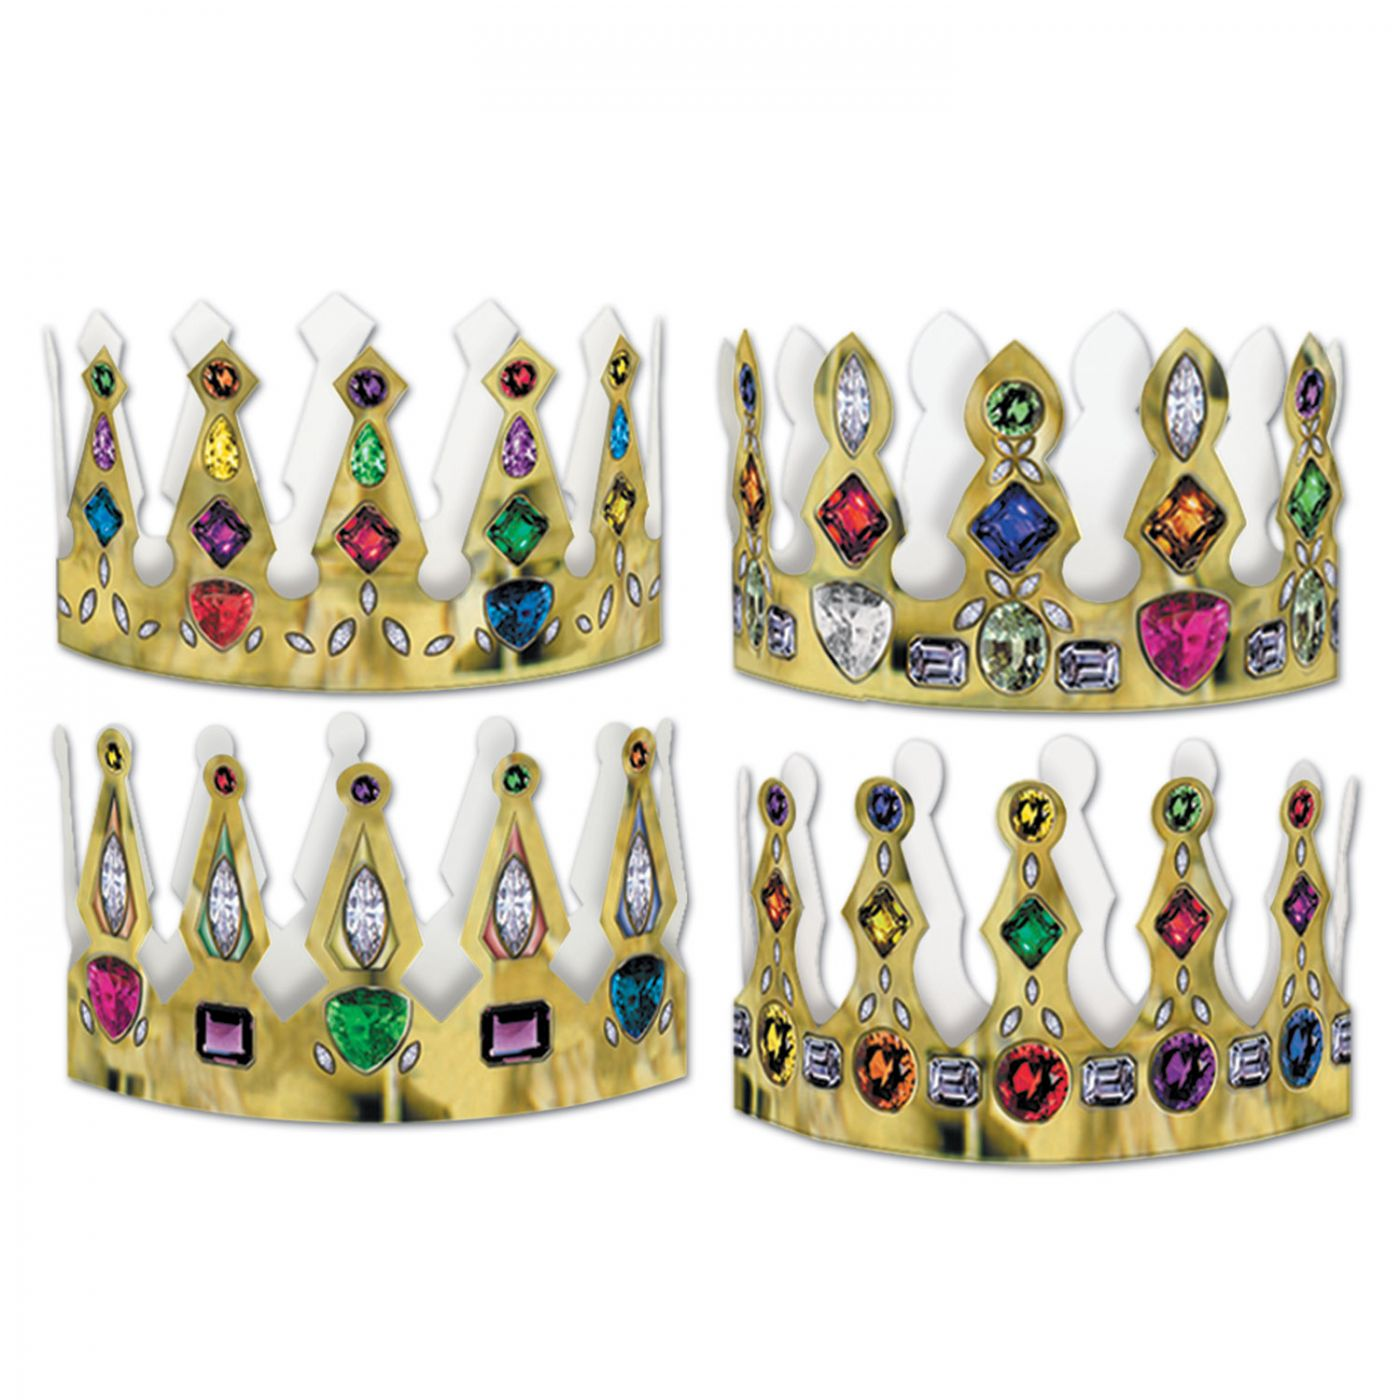 Printed Jeweled Crowns (72) image